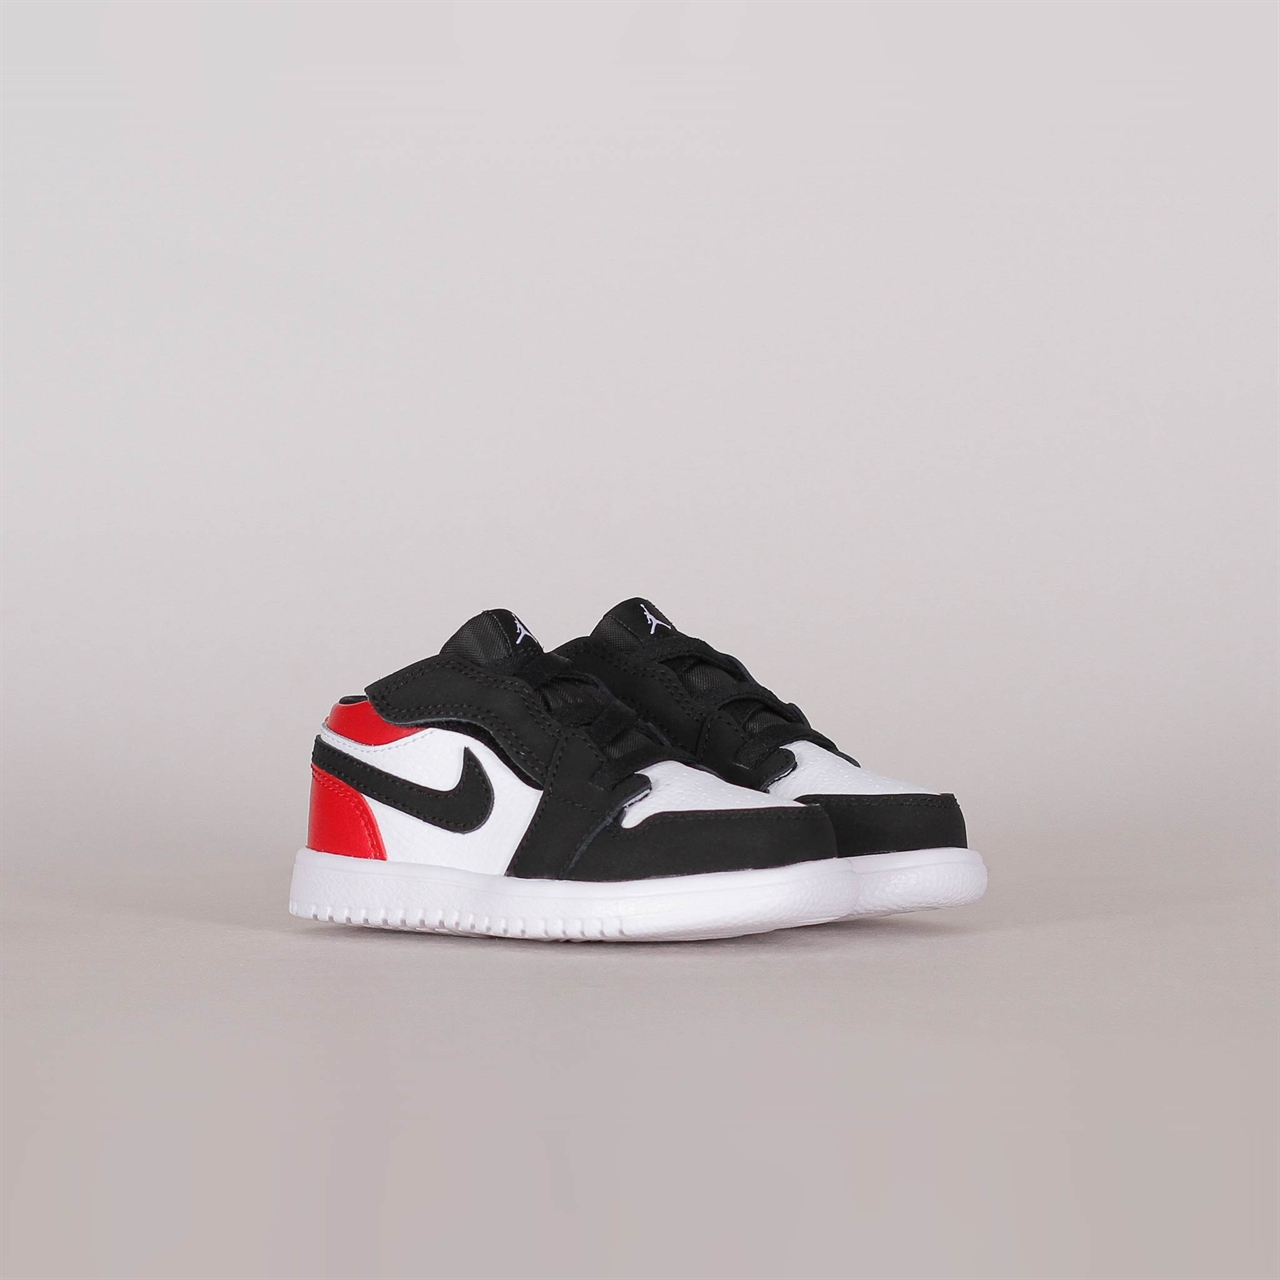 e9a1cd46180 Shelta - Nike Air Jordan 1 Low Toddler Black Toe (CI3436-116)